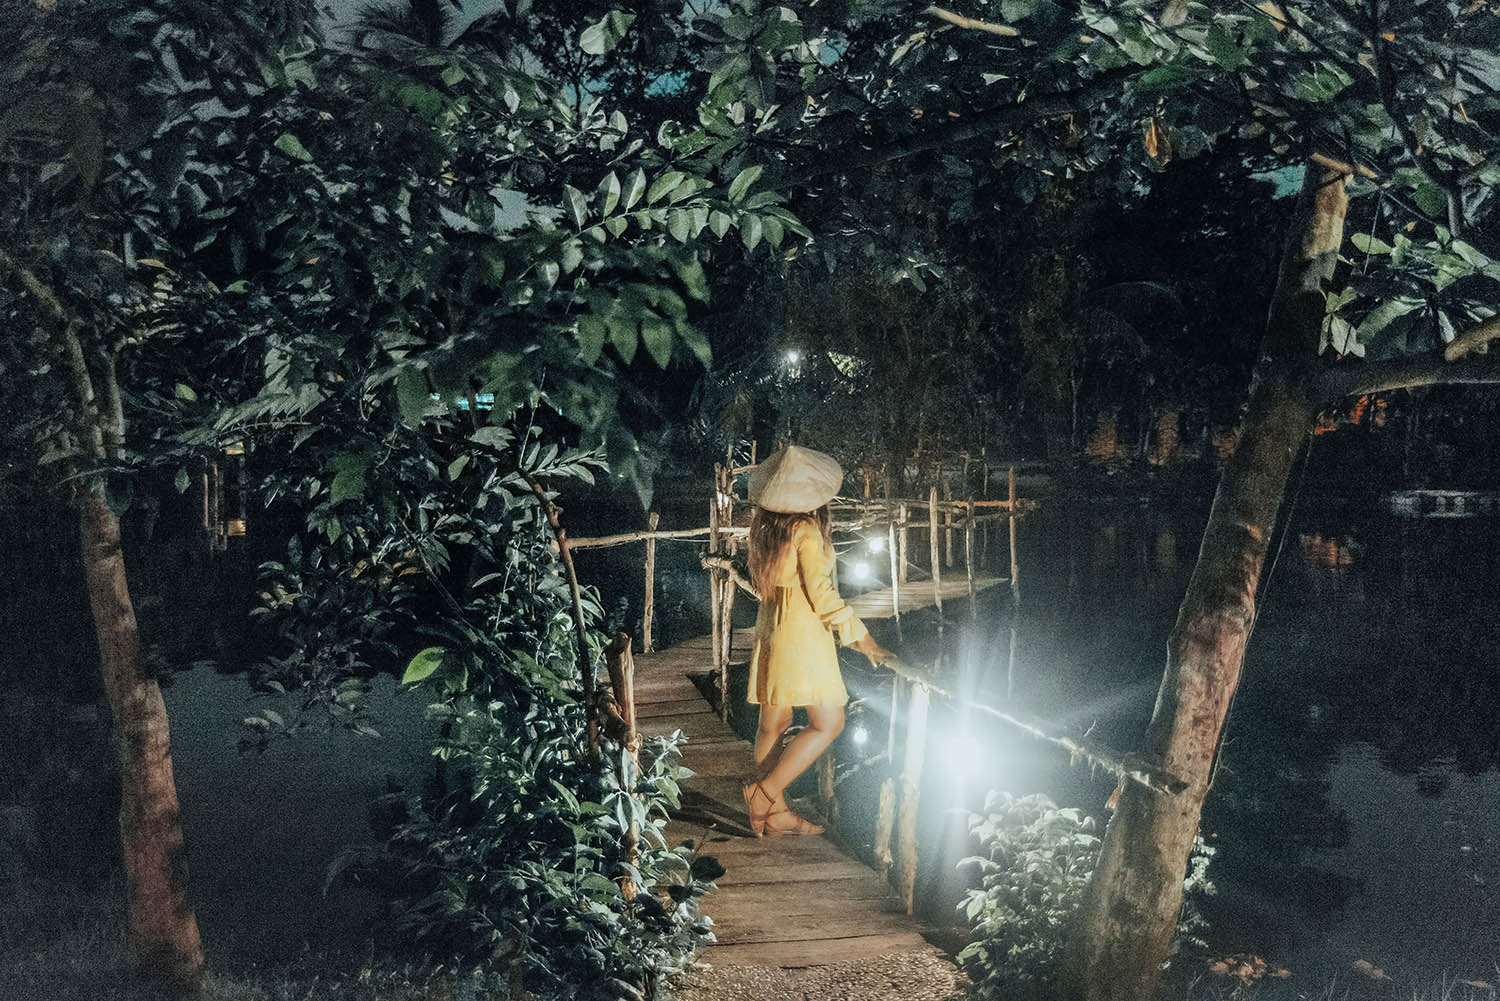 Woman in Yellow Dress with Vietnamese hat standing on bridge in Binh Quoi Village, Ho Chi Minh City, Vietnam